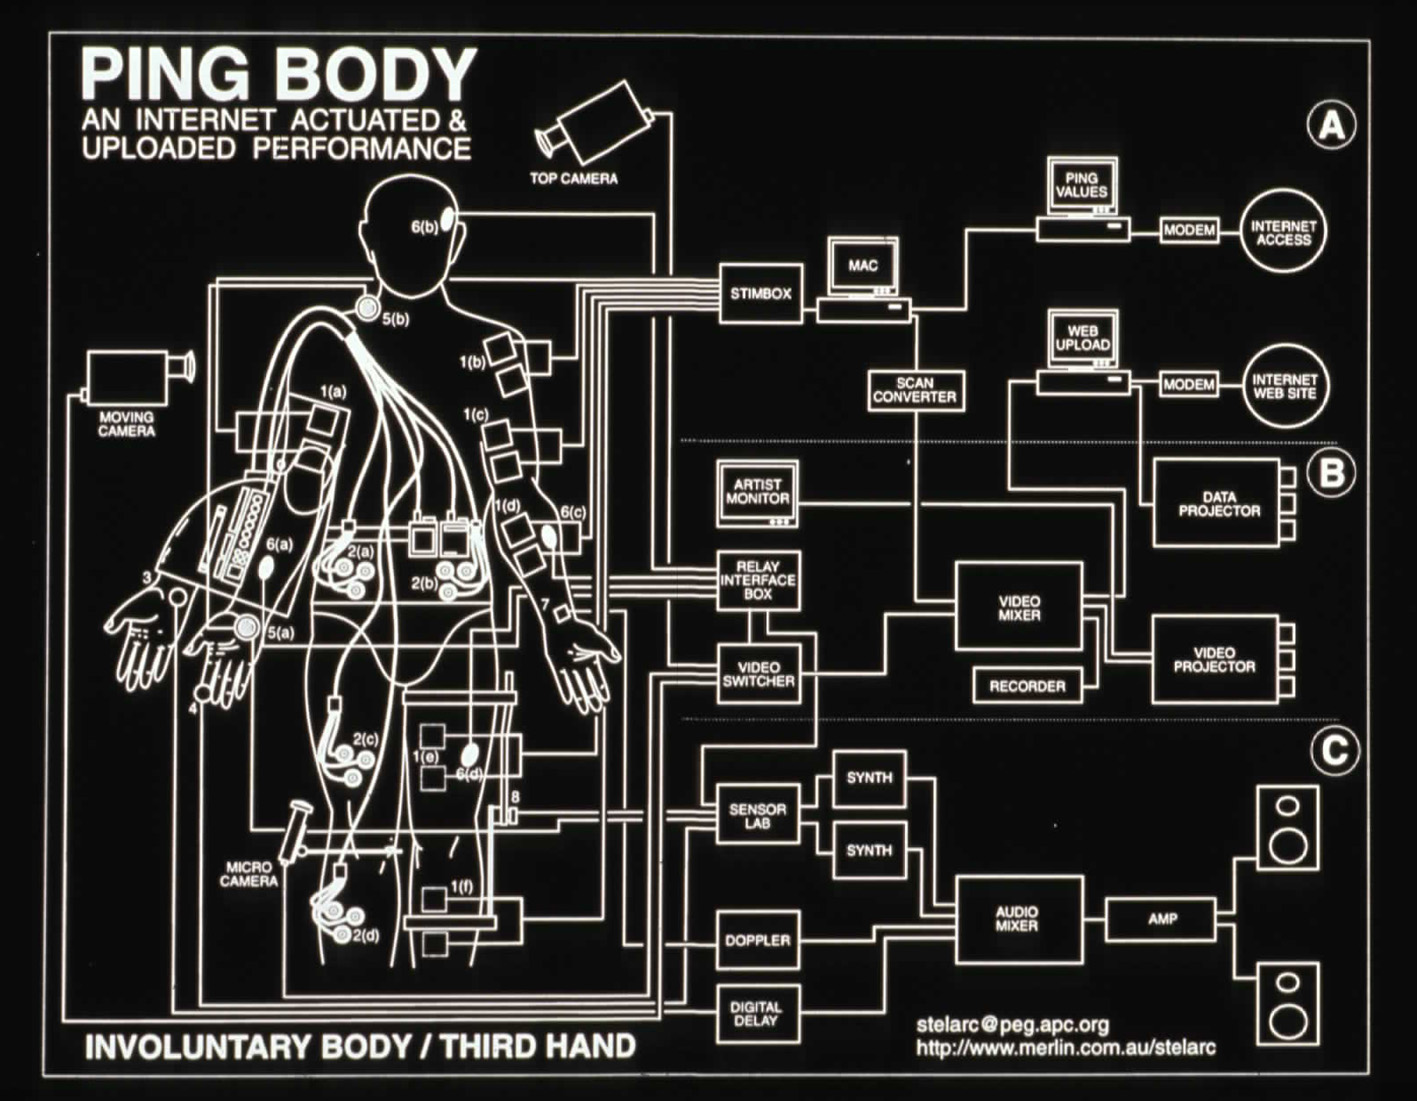 Stelarc Ping Body Schematic